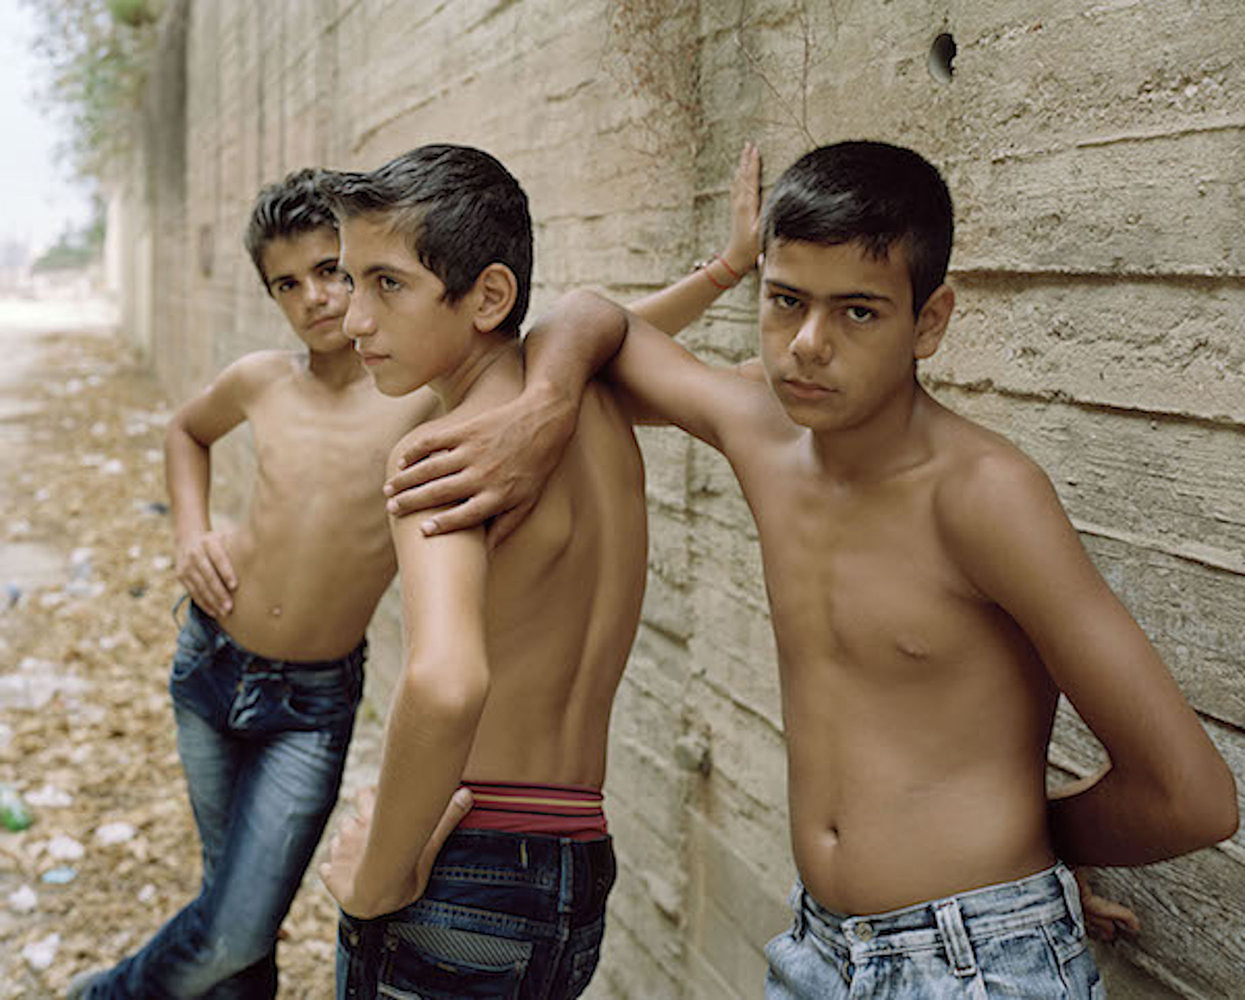 image © George Awde, from the series  Beirut